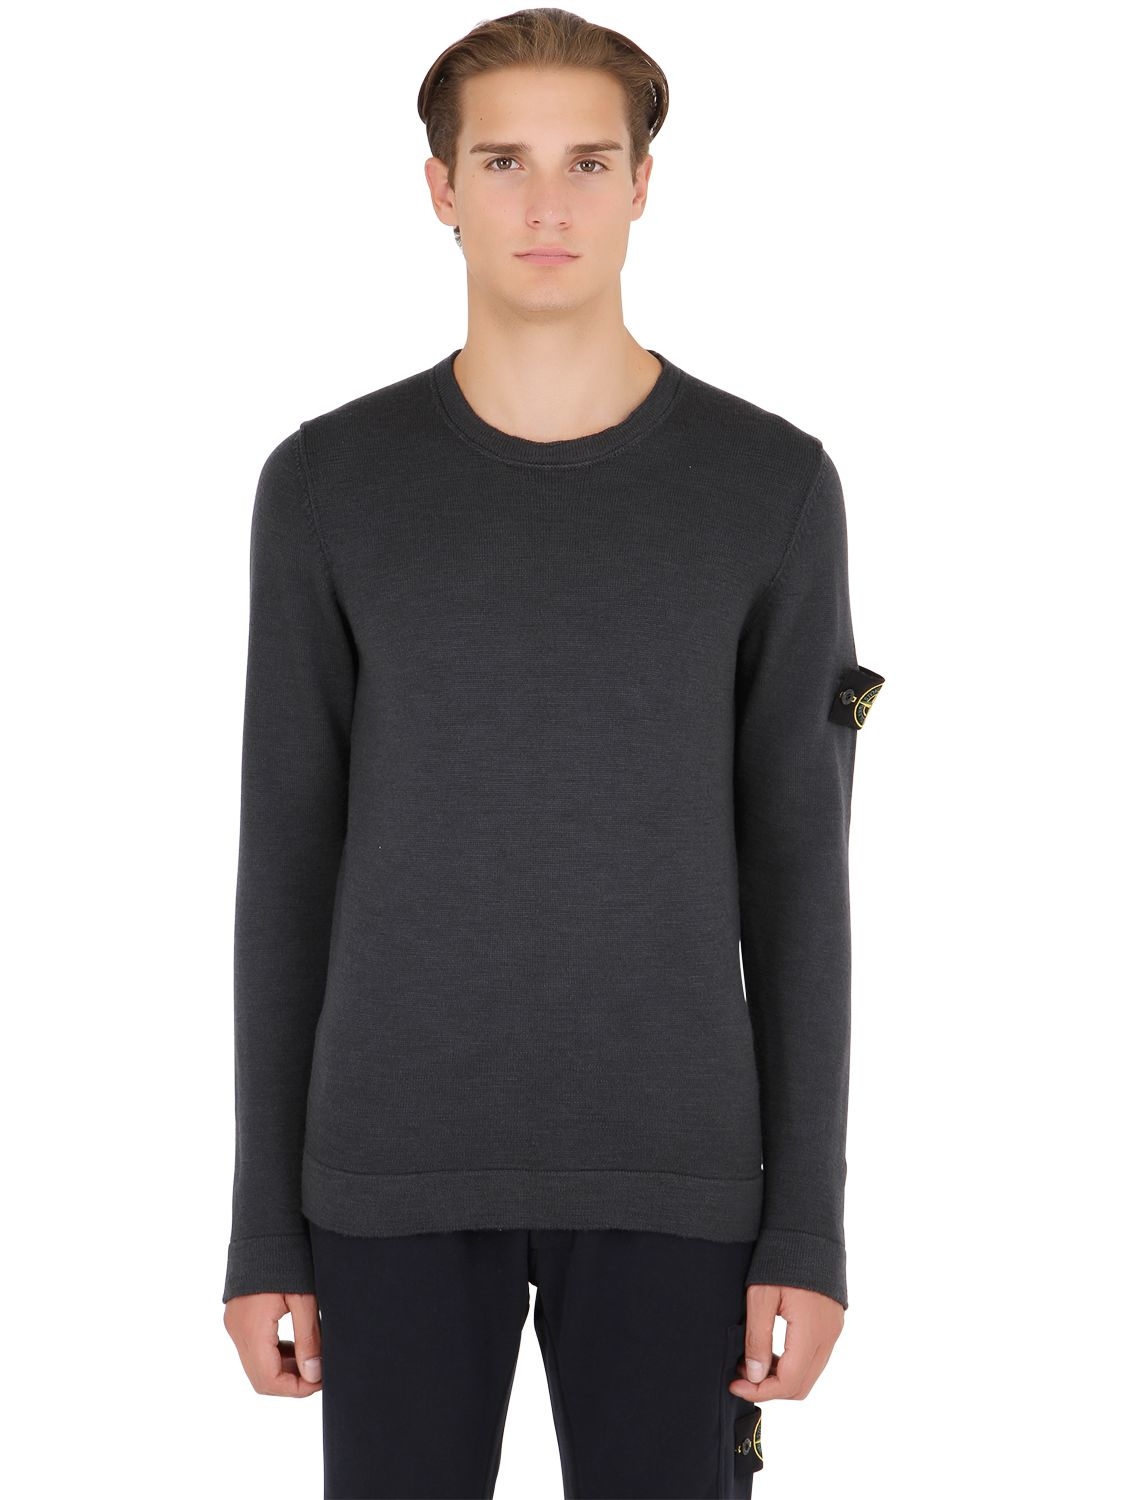 lyst stone island crew neck wool sweater in gray for men. Black Bedroom Furniture Sets. Home Design Ideas